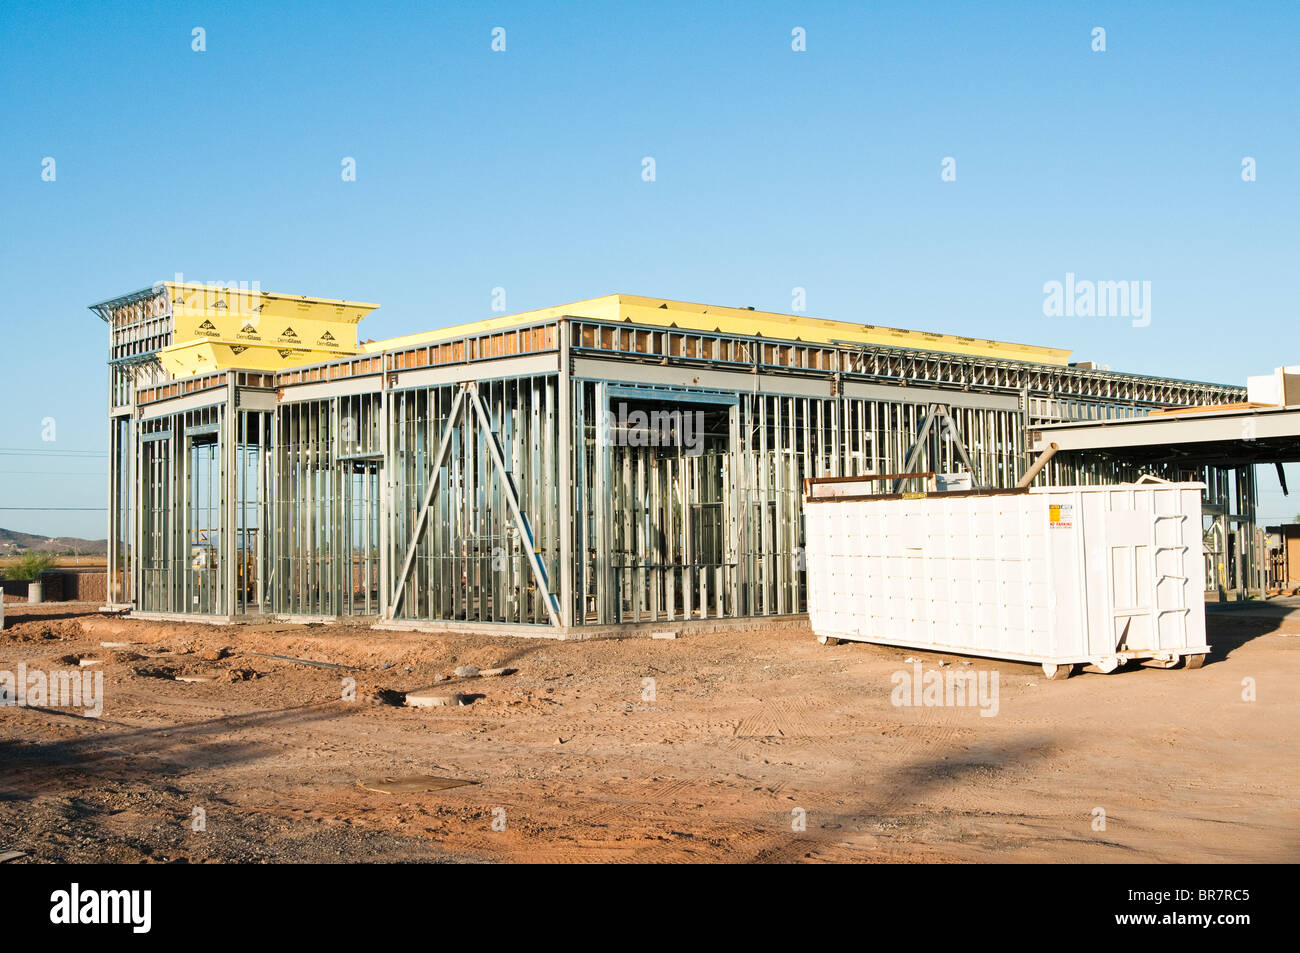 Structural Steel Construction - Stock Image